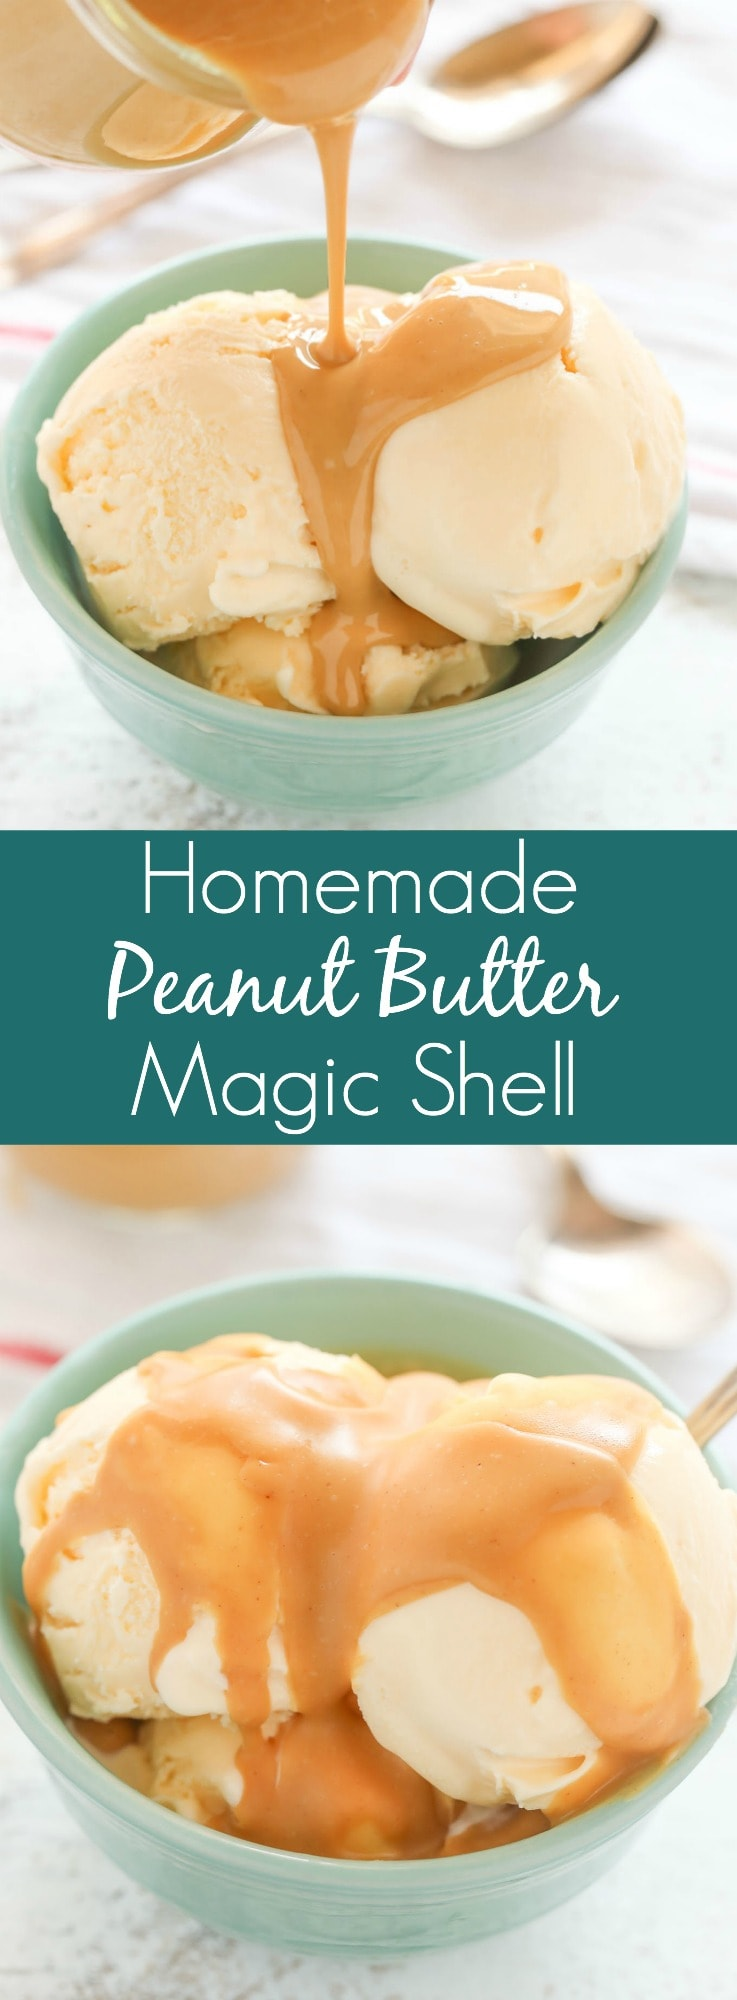 This Easy Homemade Peanut Butter Magic Shell only requires three ingredients and amicrowave. The perfect topping for almost any ice cream!